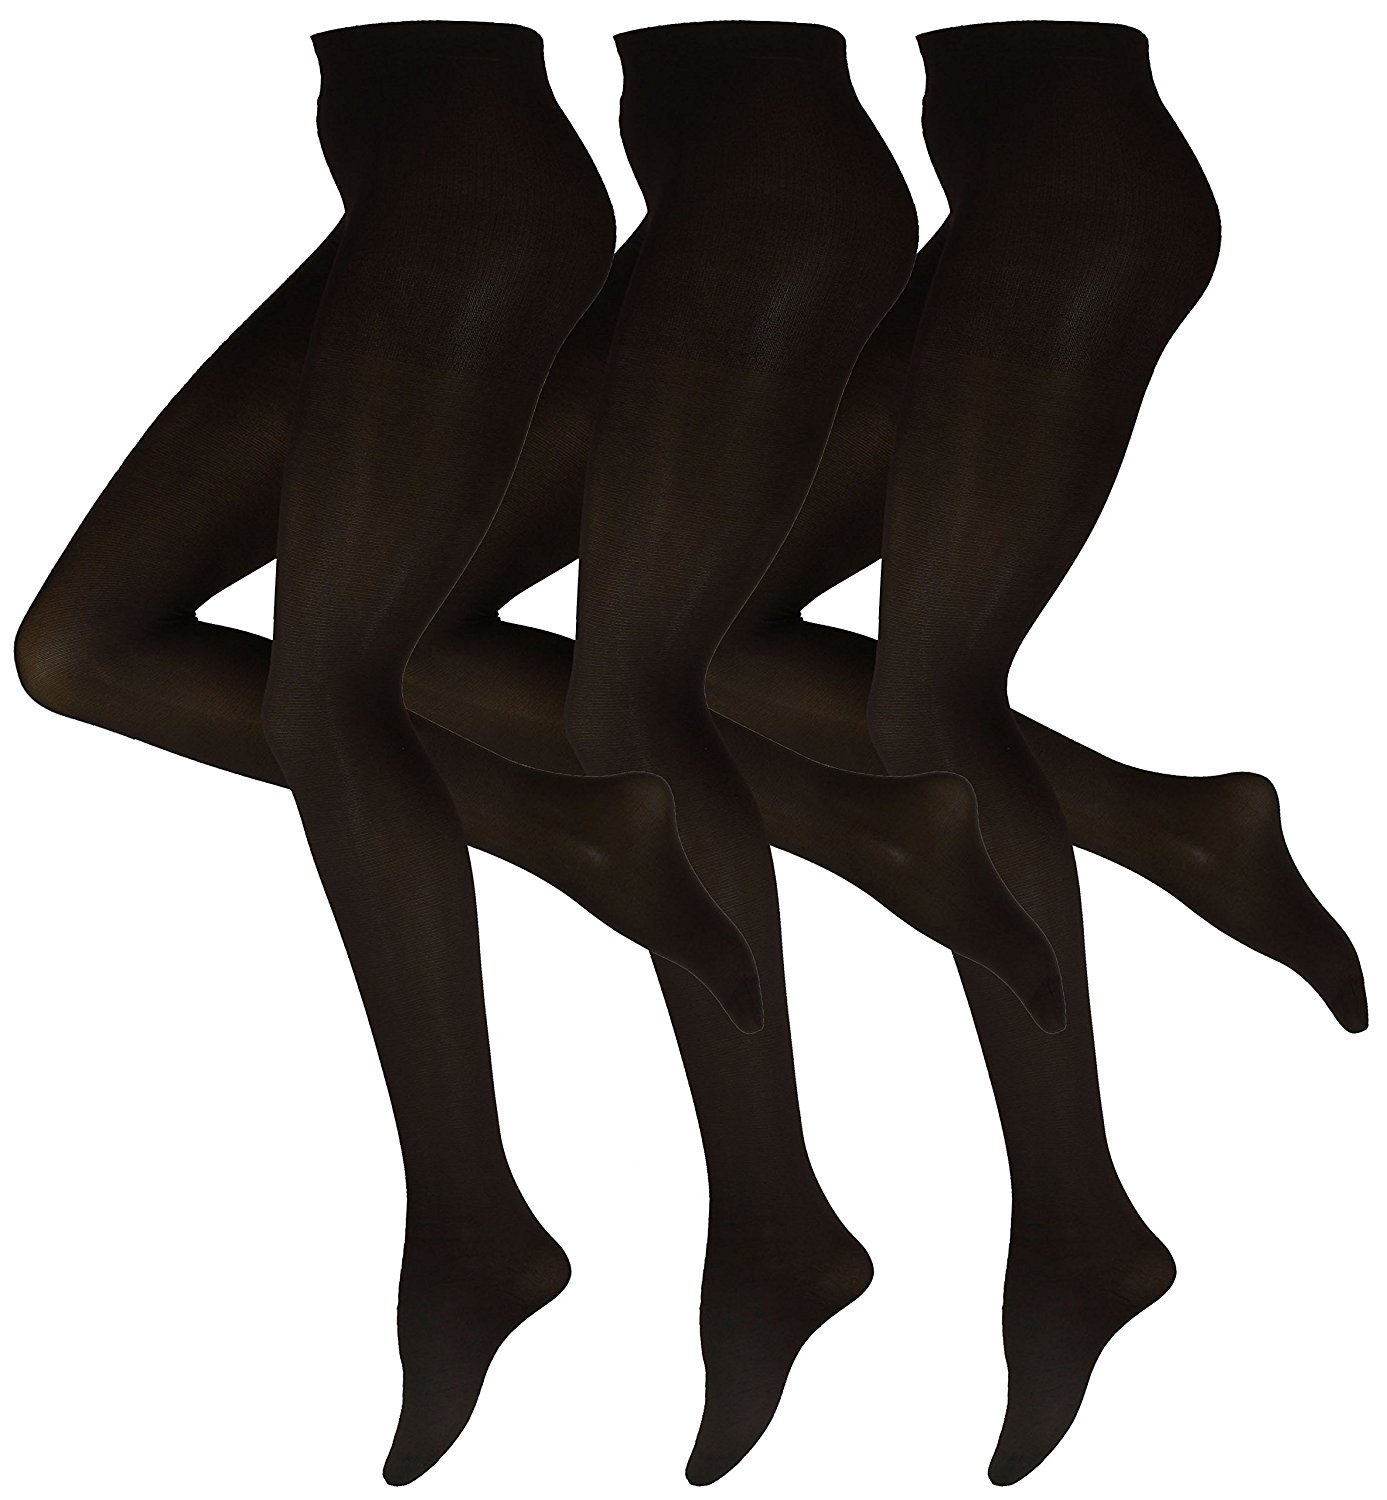 7b711581674ca Get Quotations · Women's Tights 70 Denier Opaque Solid Color Footed  Pantyhose Tights ( Pack of 3 )